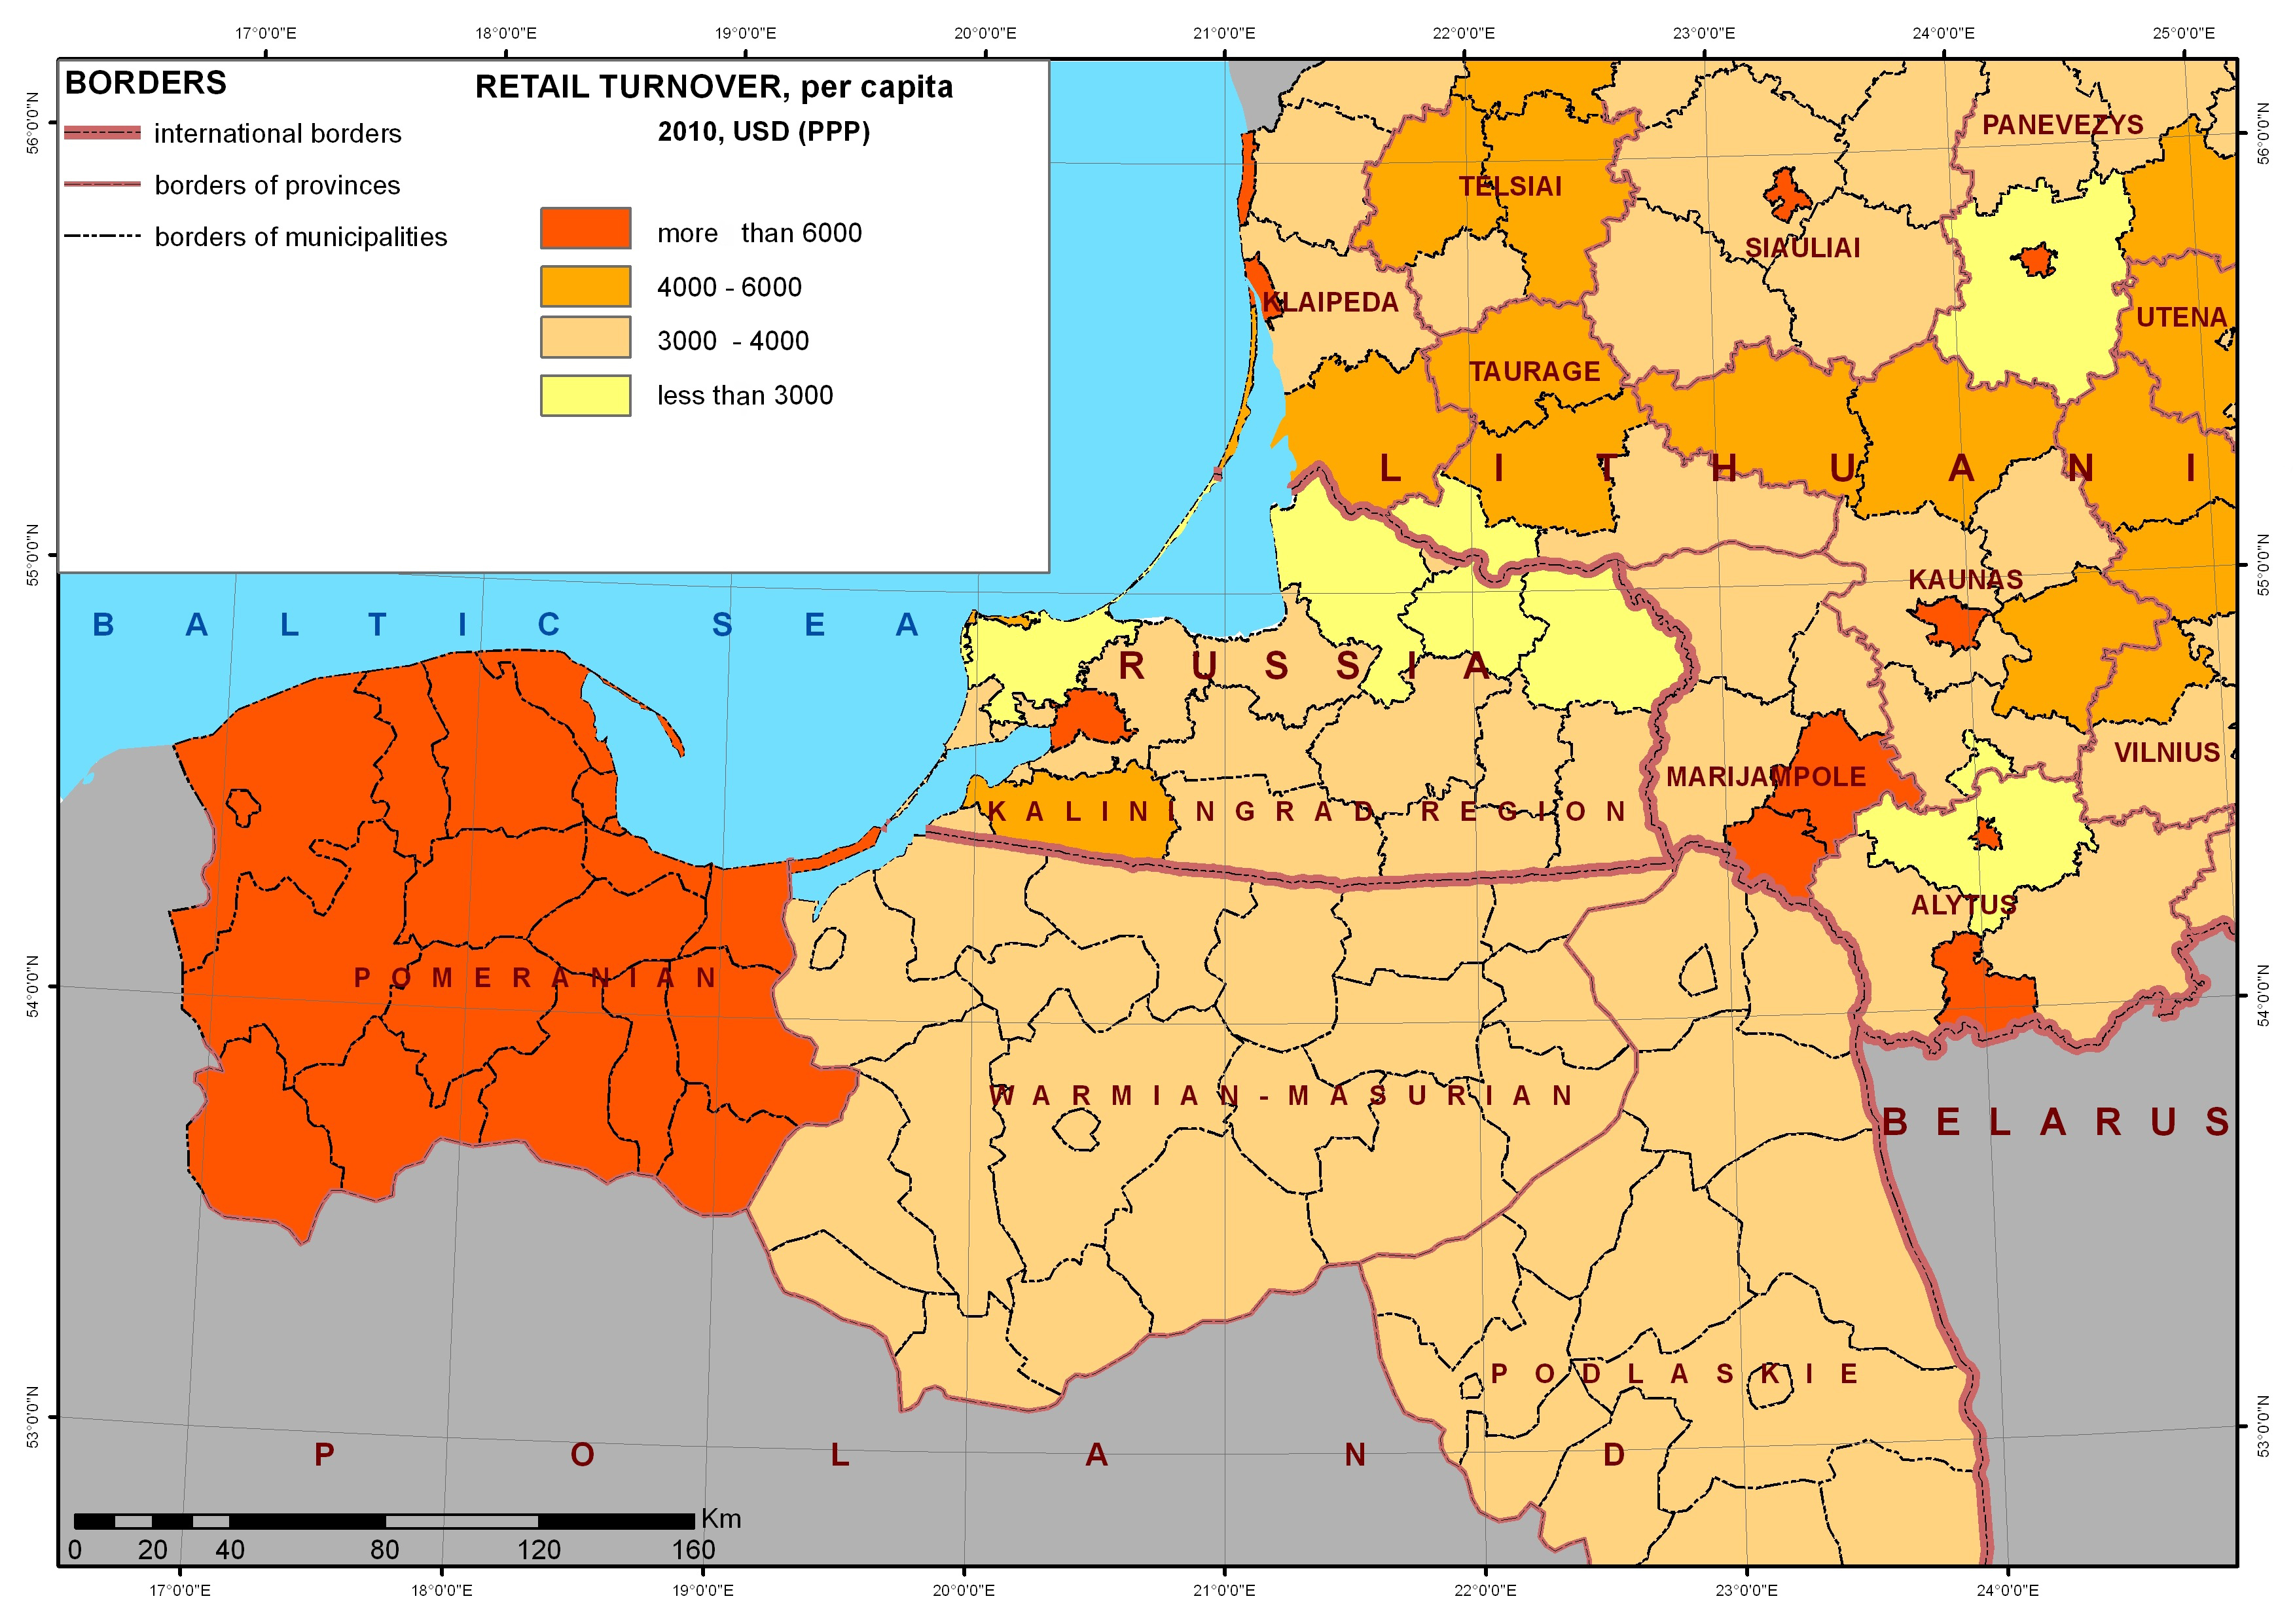 The Russian exclave of Kaliningrad. Challenges and limits of